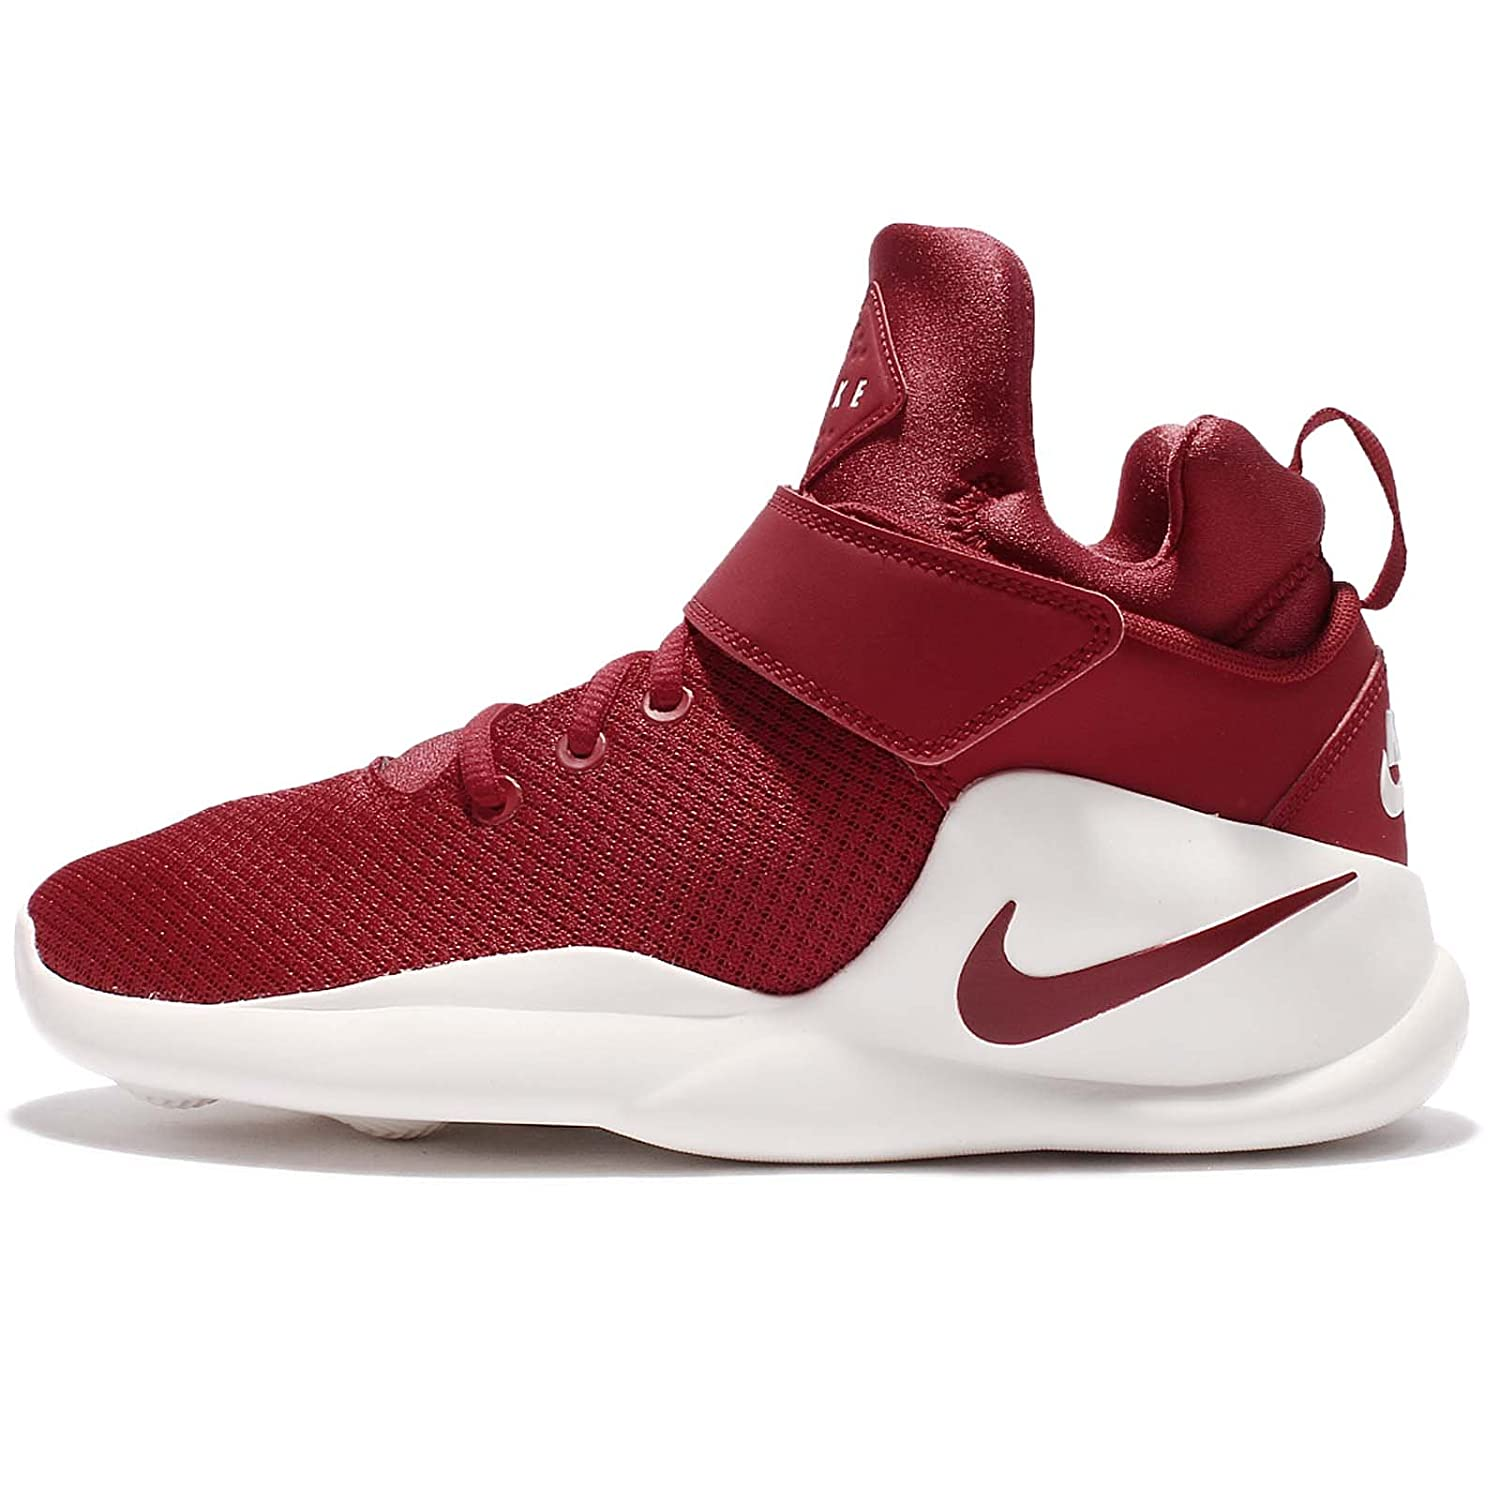 best sneakers 8f9d0 bf124 Nike Kwazi Mens Basketball Shoes (11. 5) Buy Online at Low Prices in  India - Amazon.in